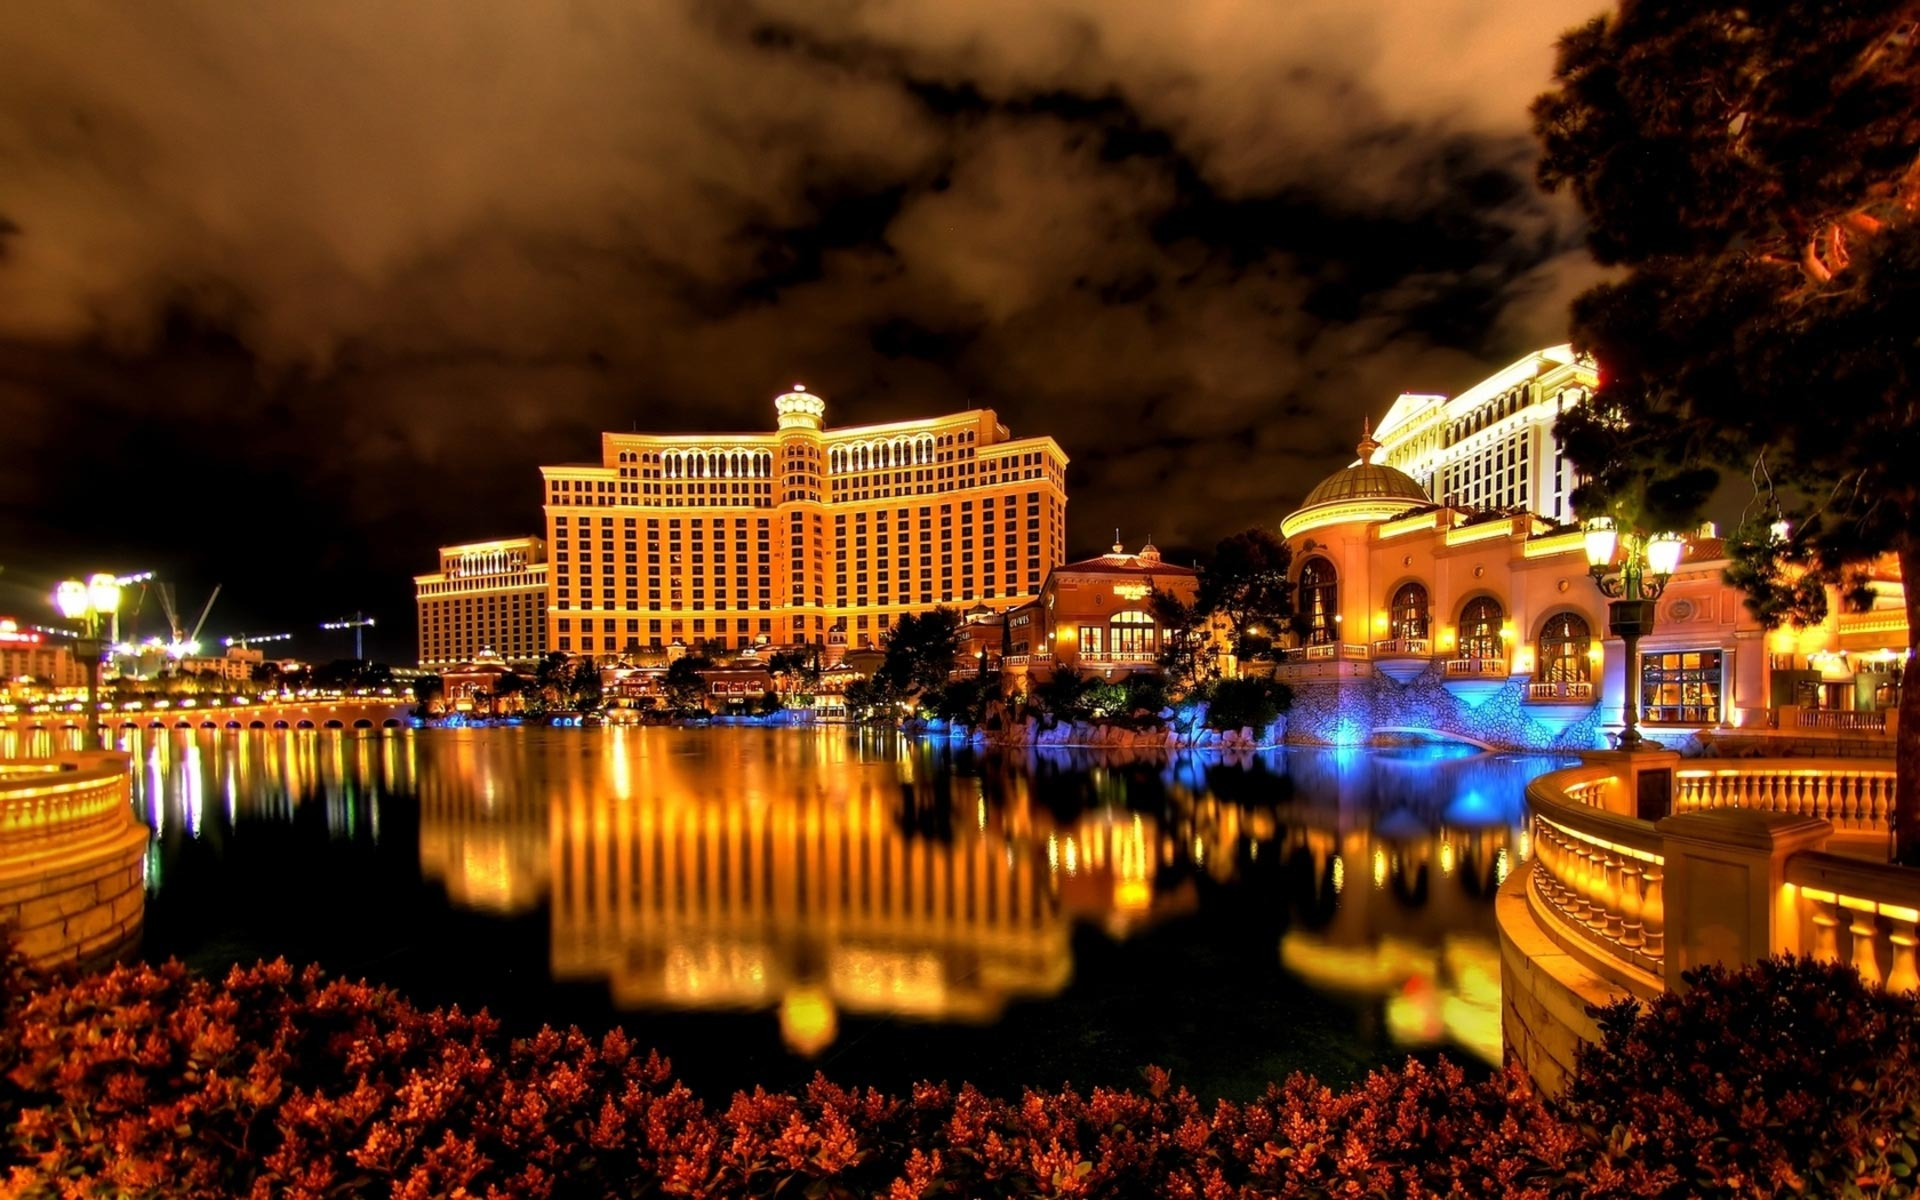 Las vegas wallpapers best wallpapers for Quality wallpaper